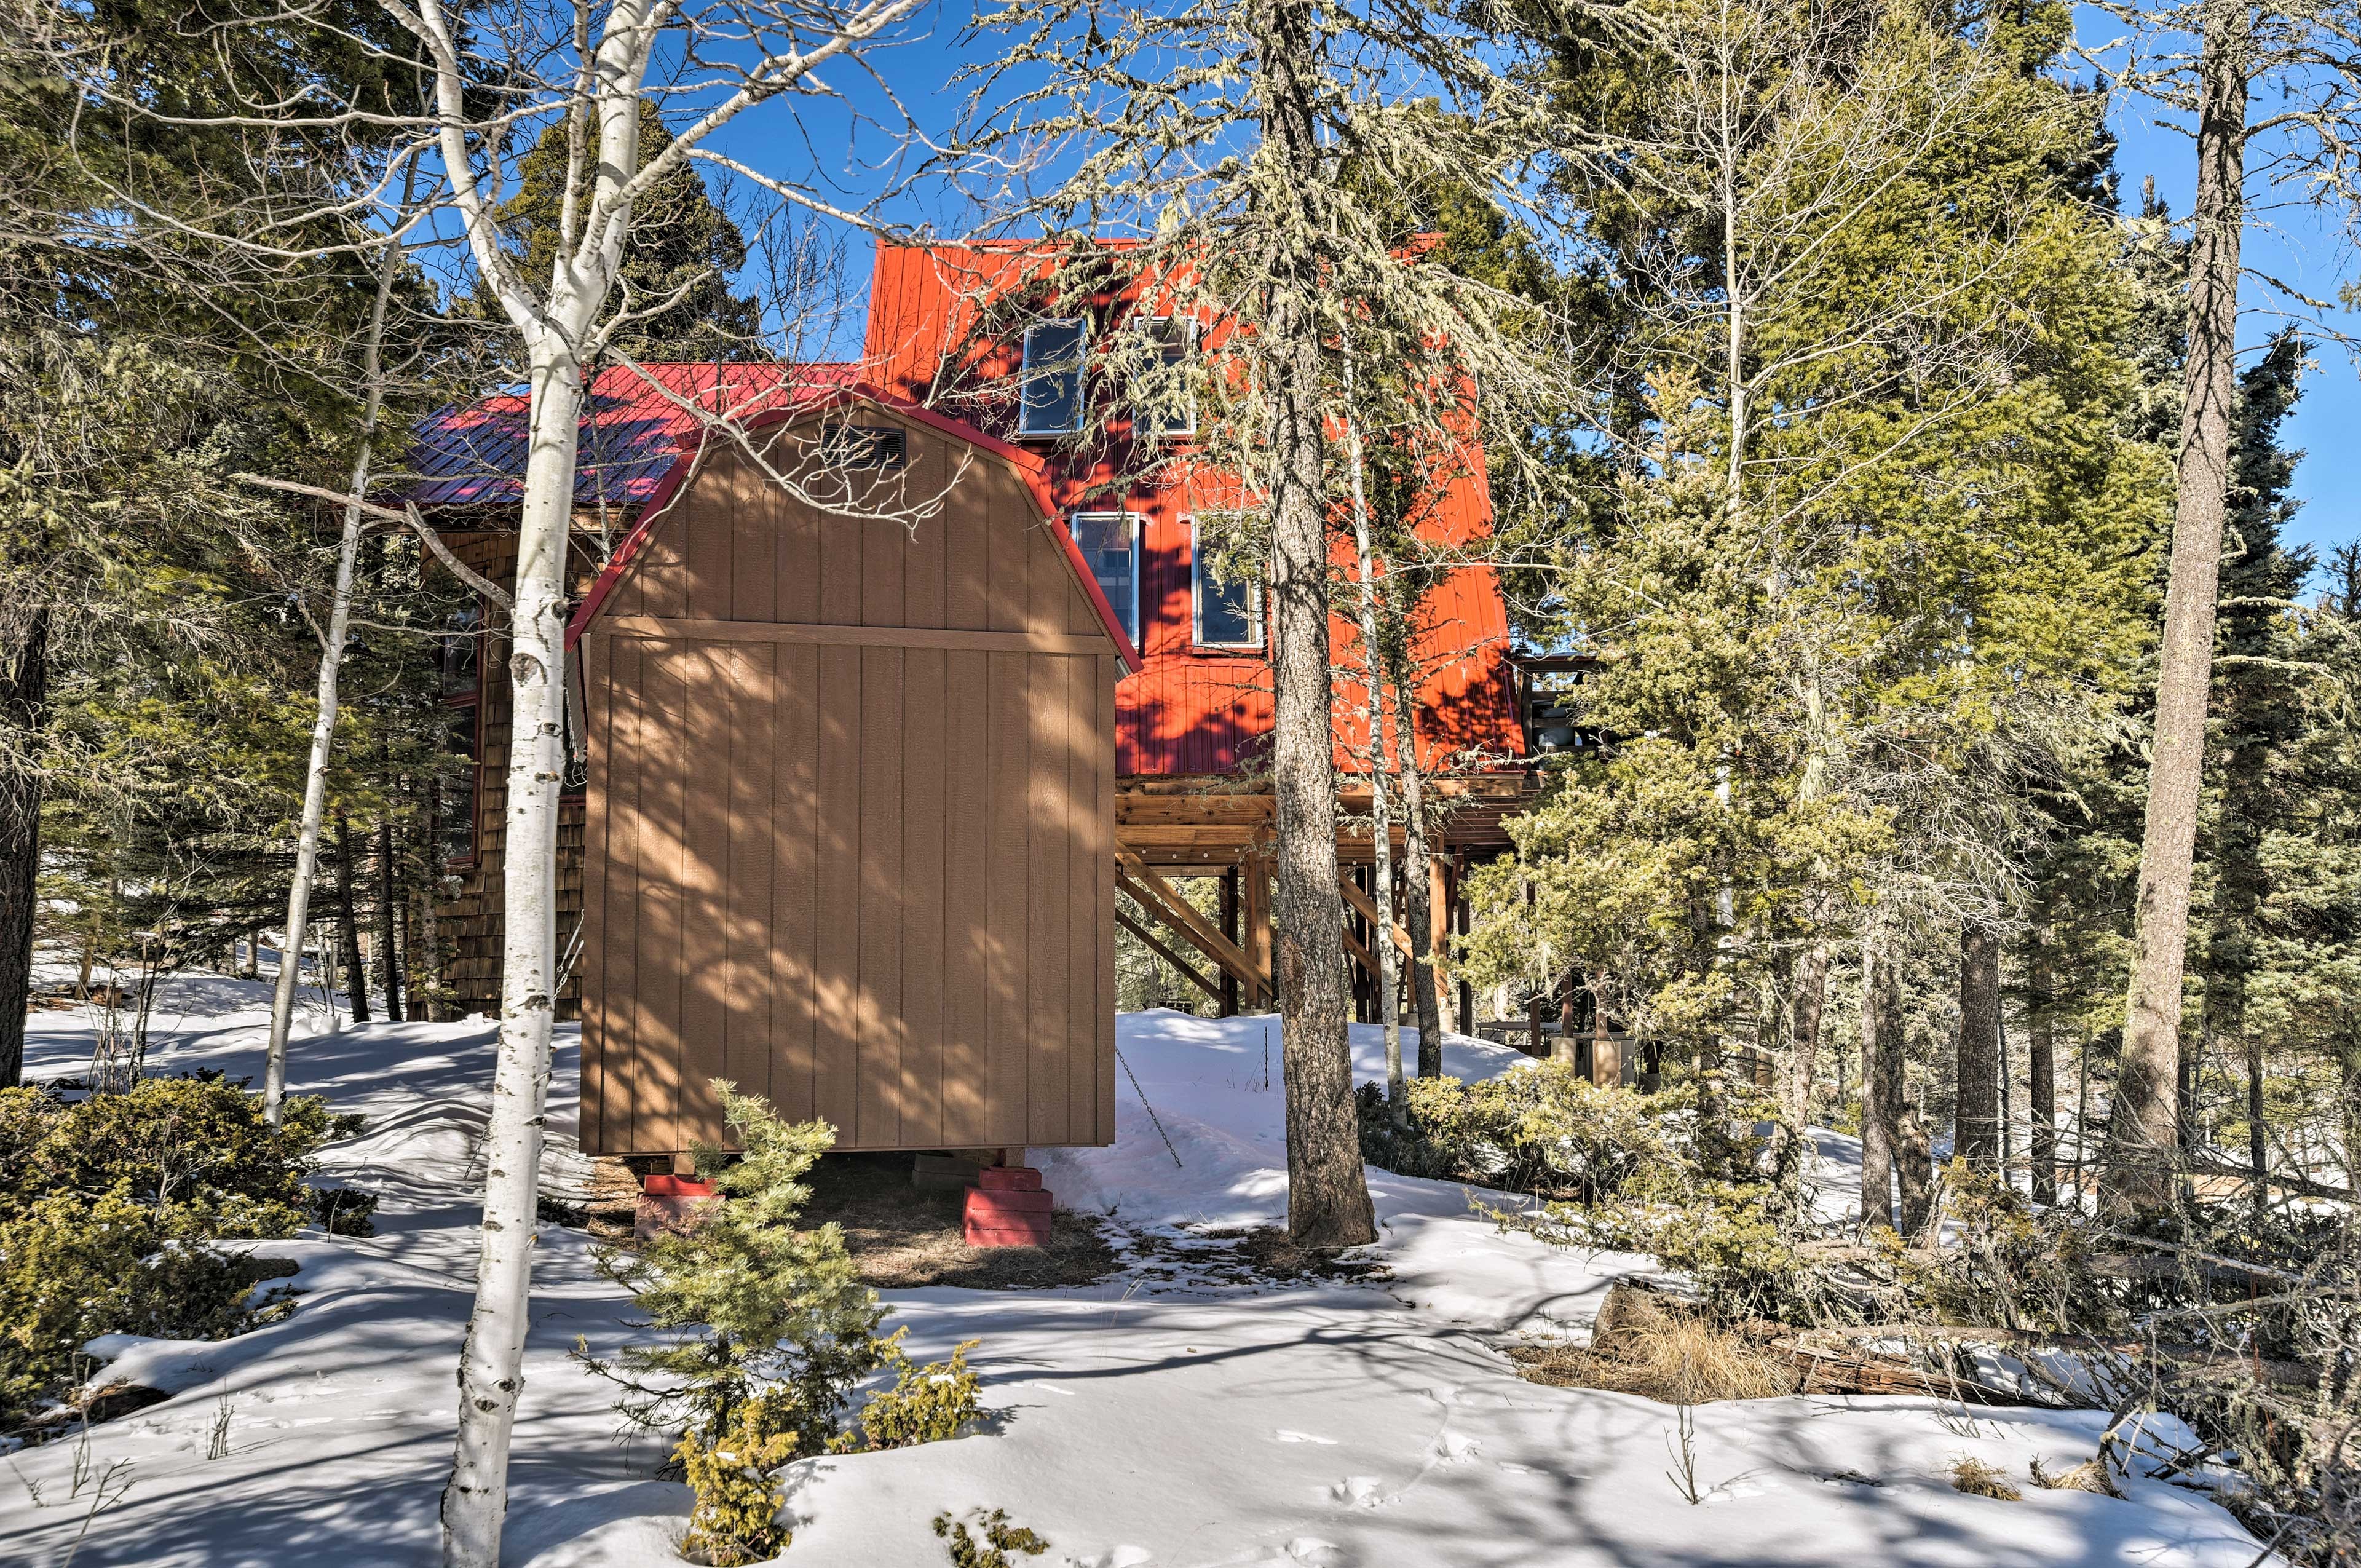 Book now to secure your spot in this Angel Fire Resort cabin!